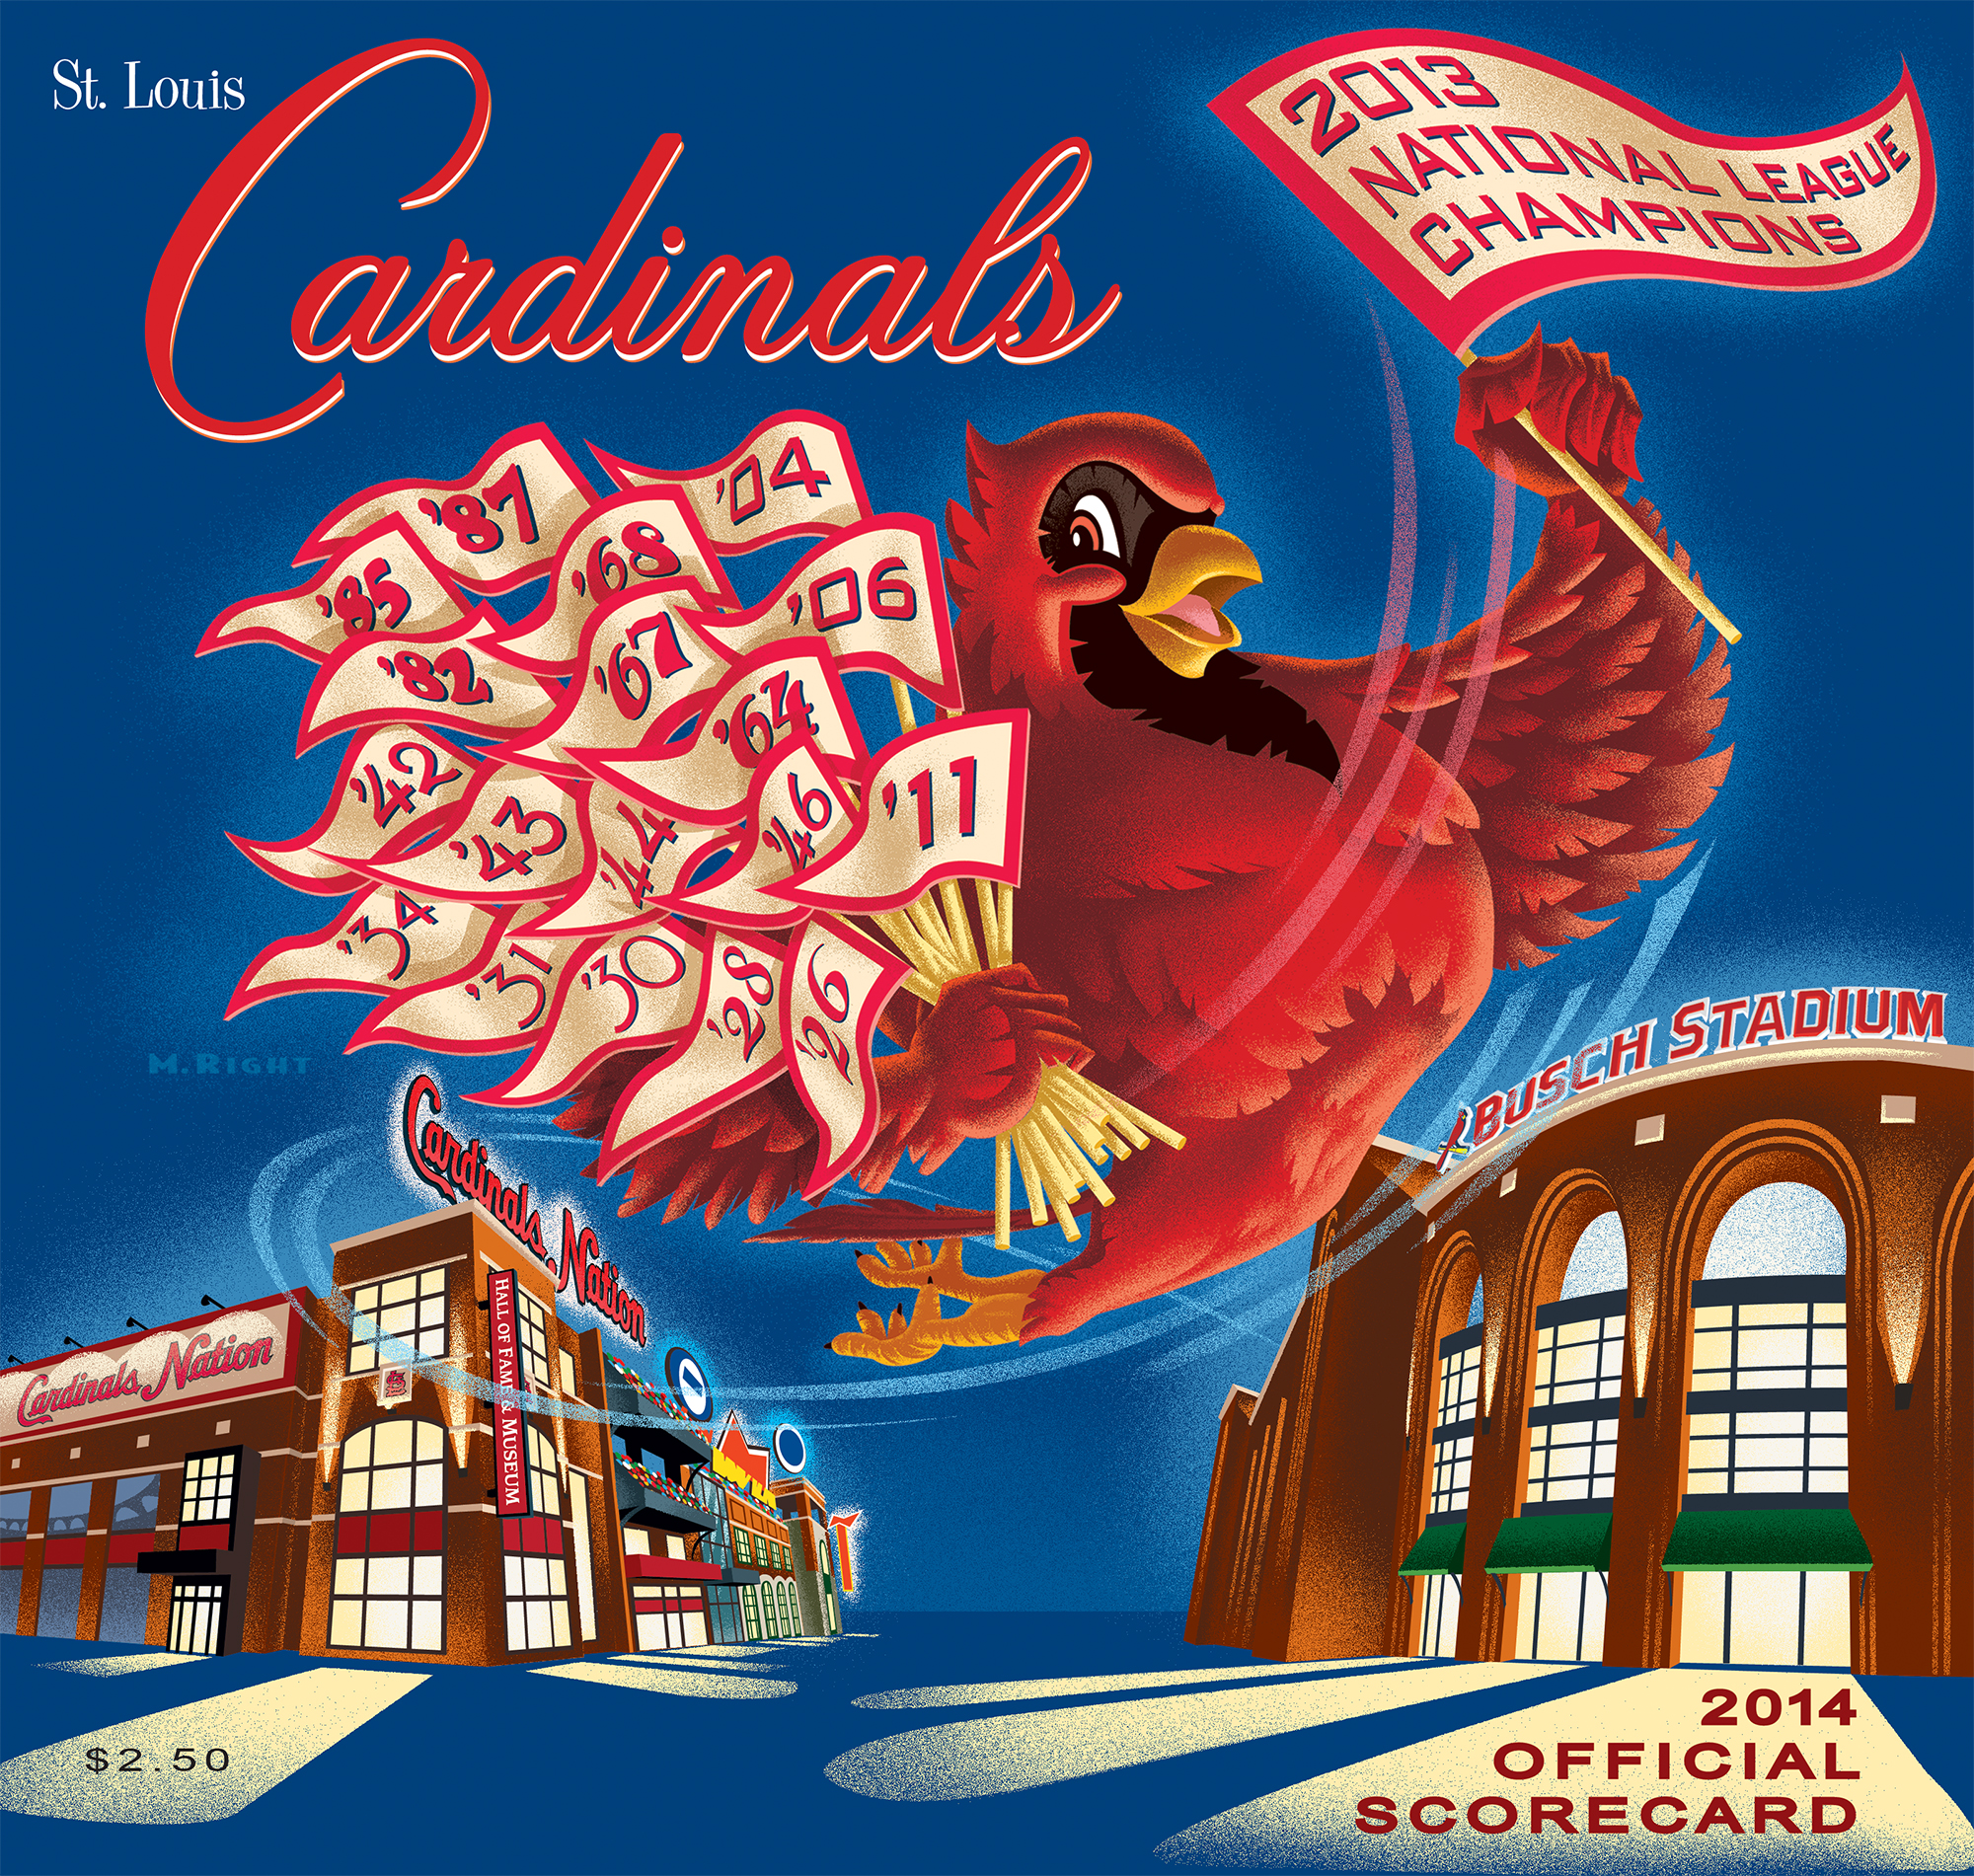 2014 Cardinals Official Scorecard